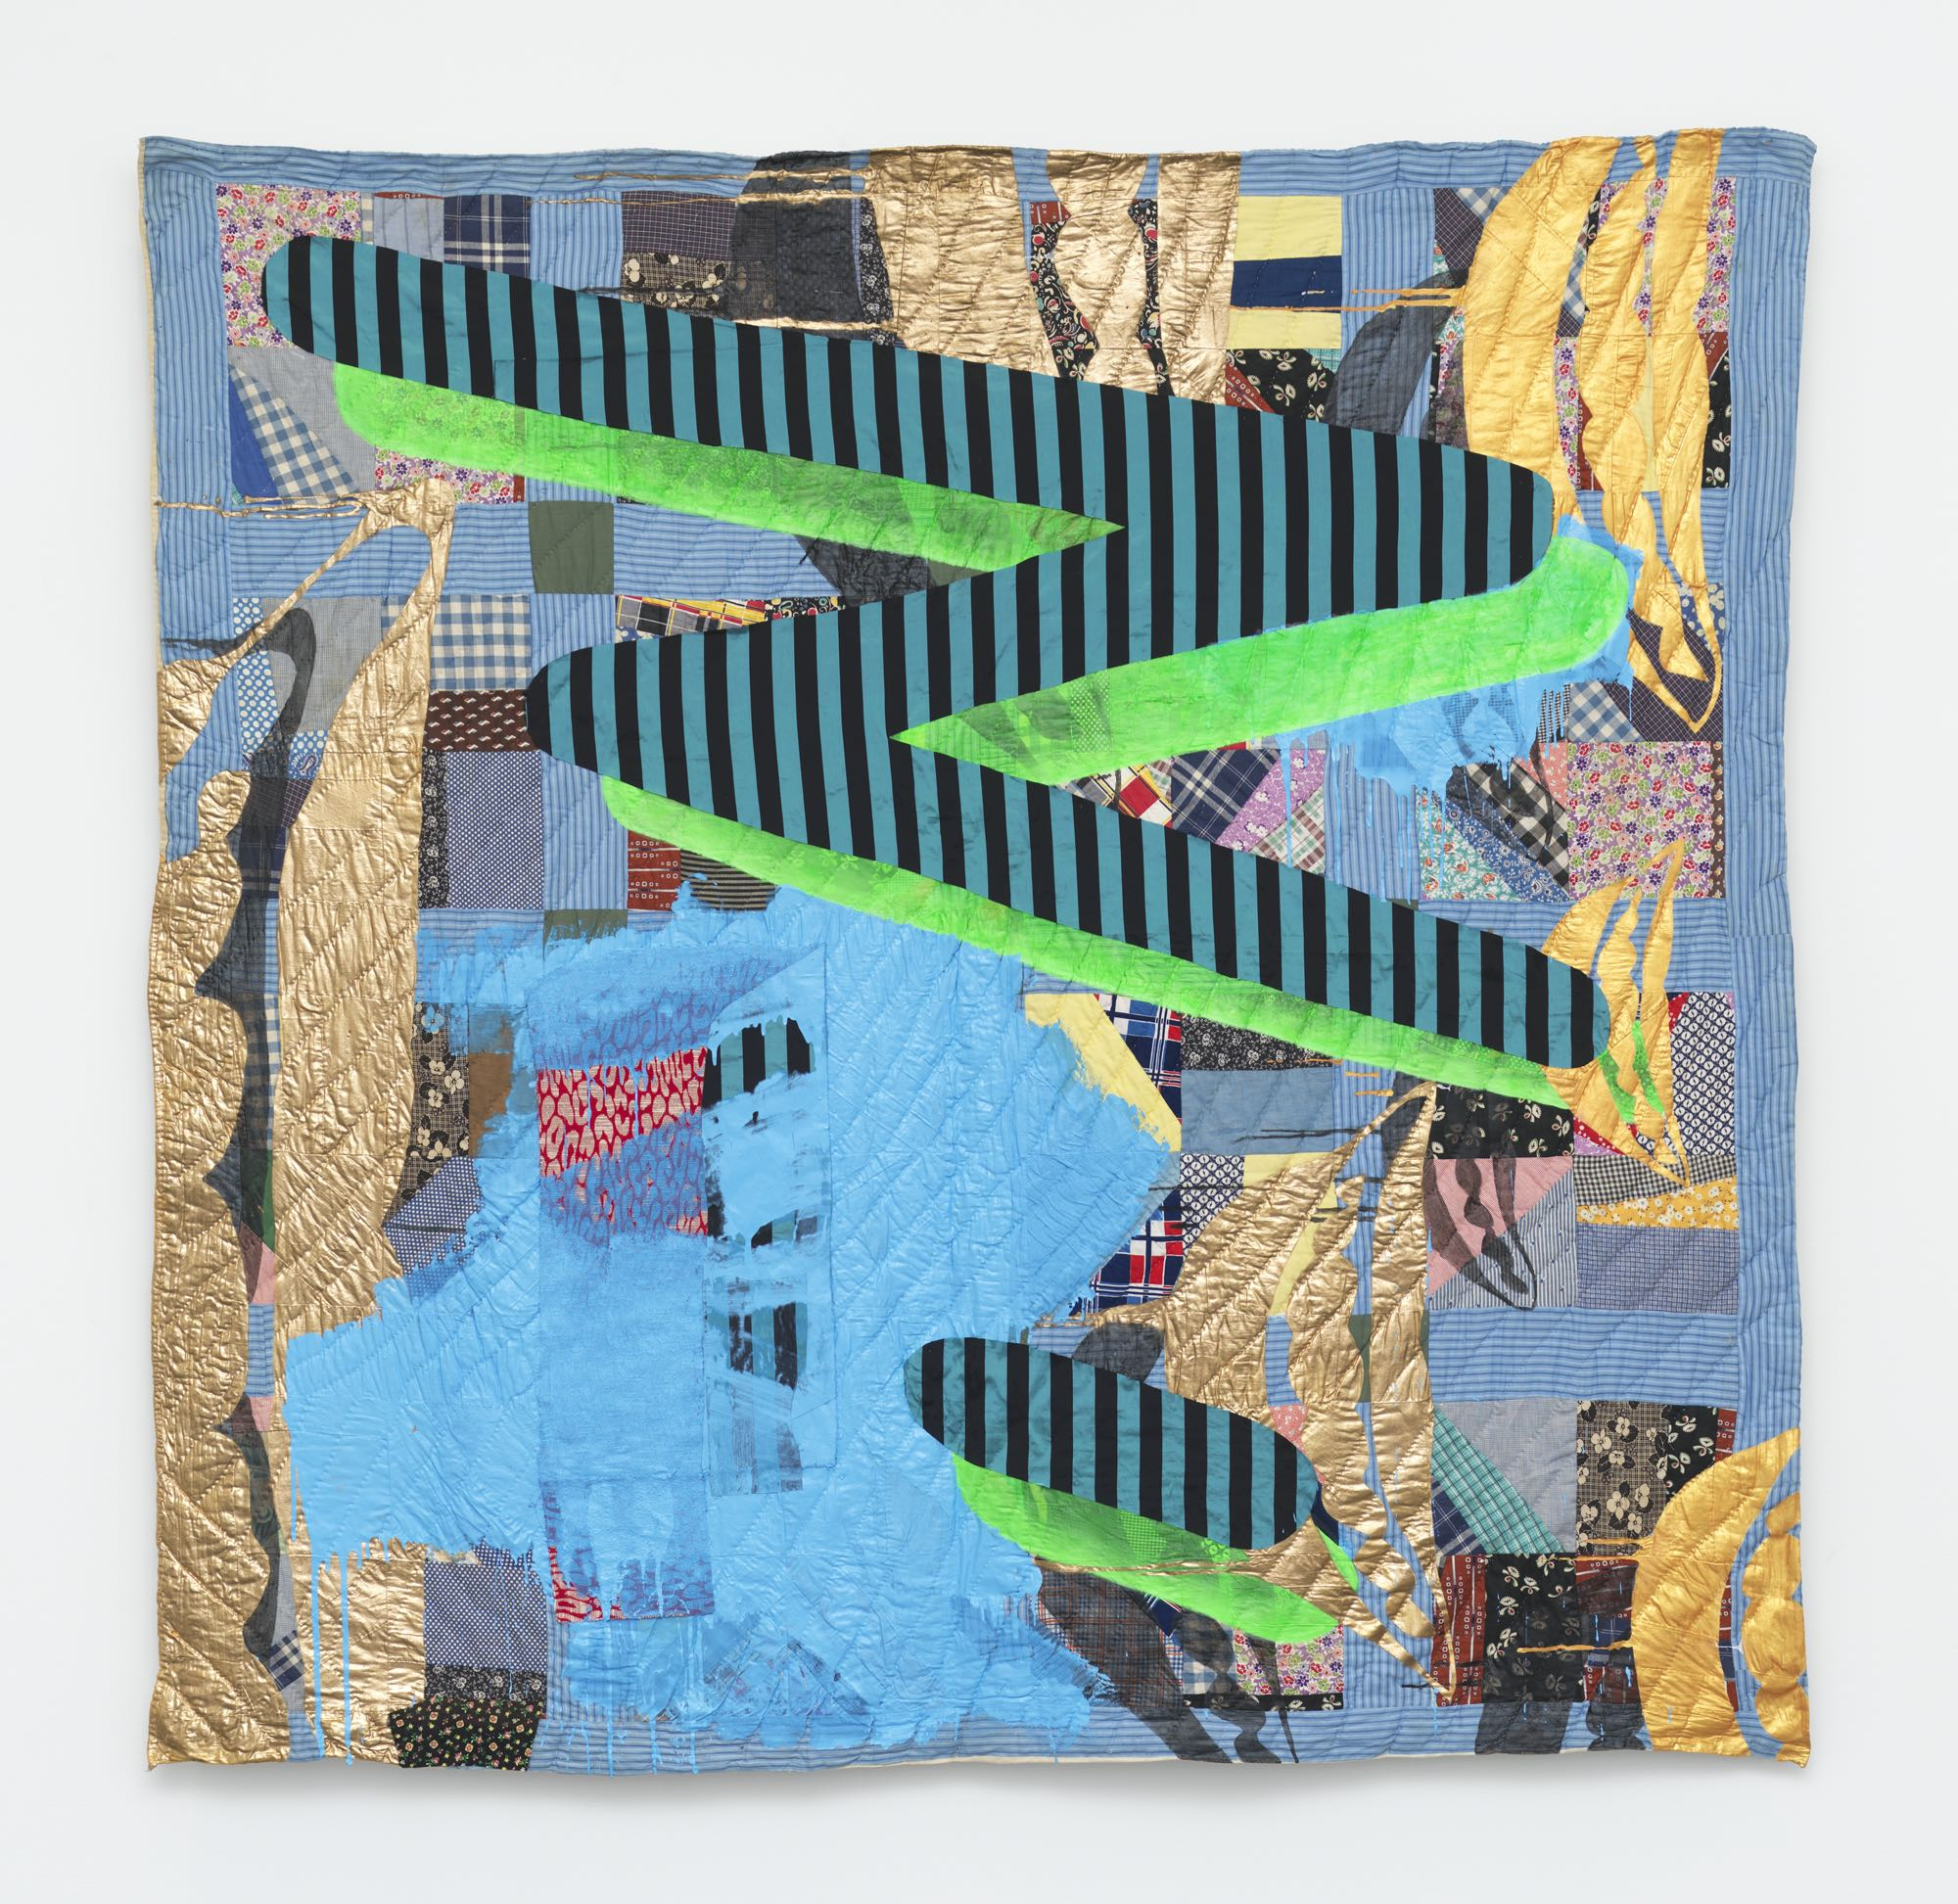 quilt by sanford biggers, with abstract image overlayed with a zigzag shape